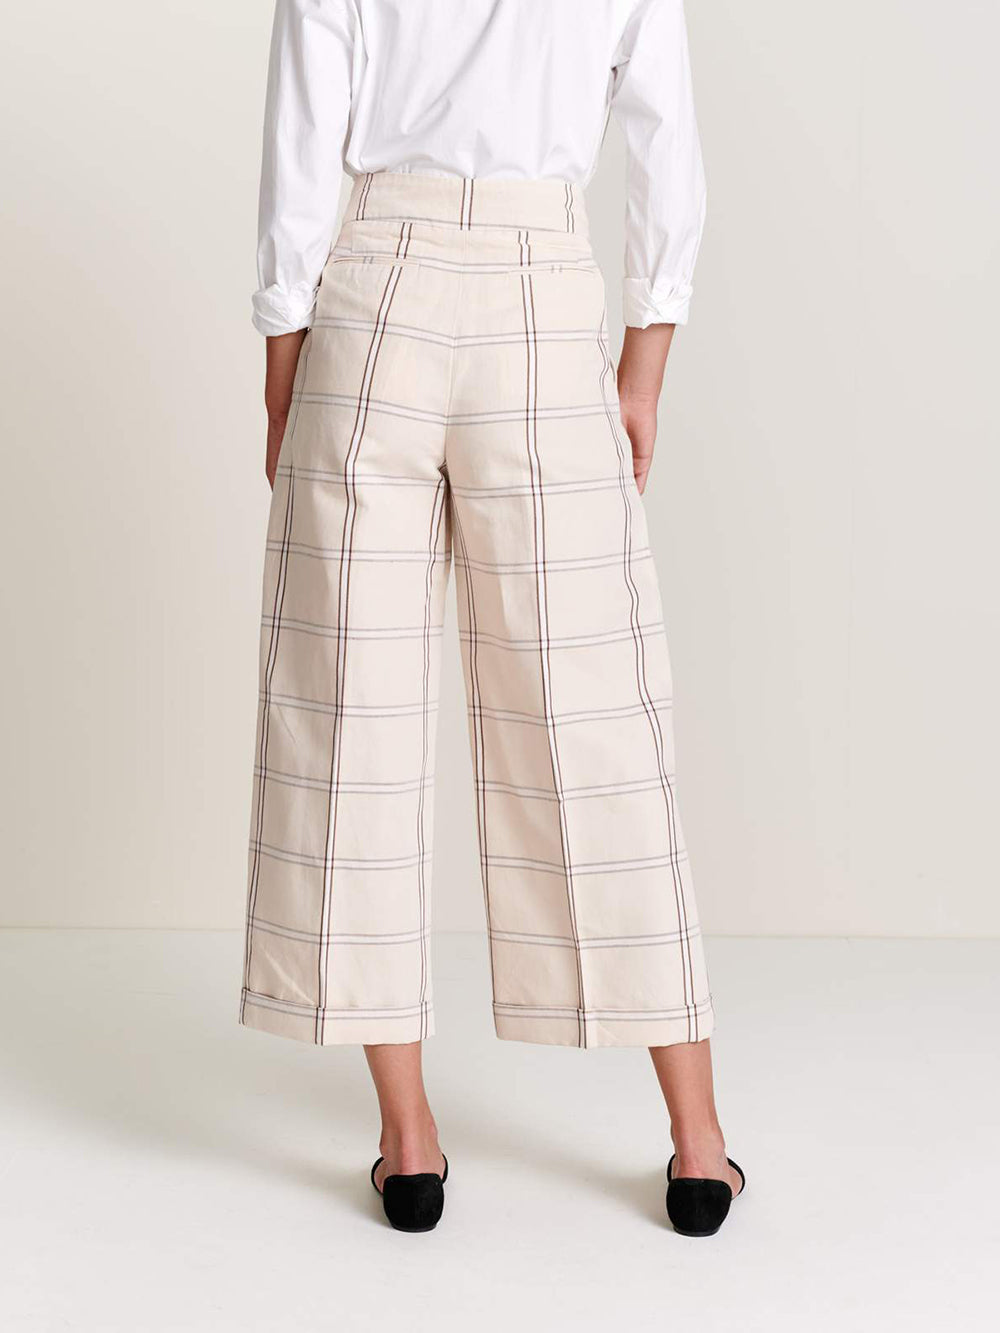 bellerose vincent pant in check a